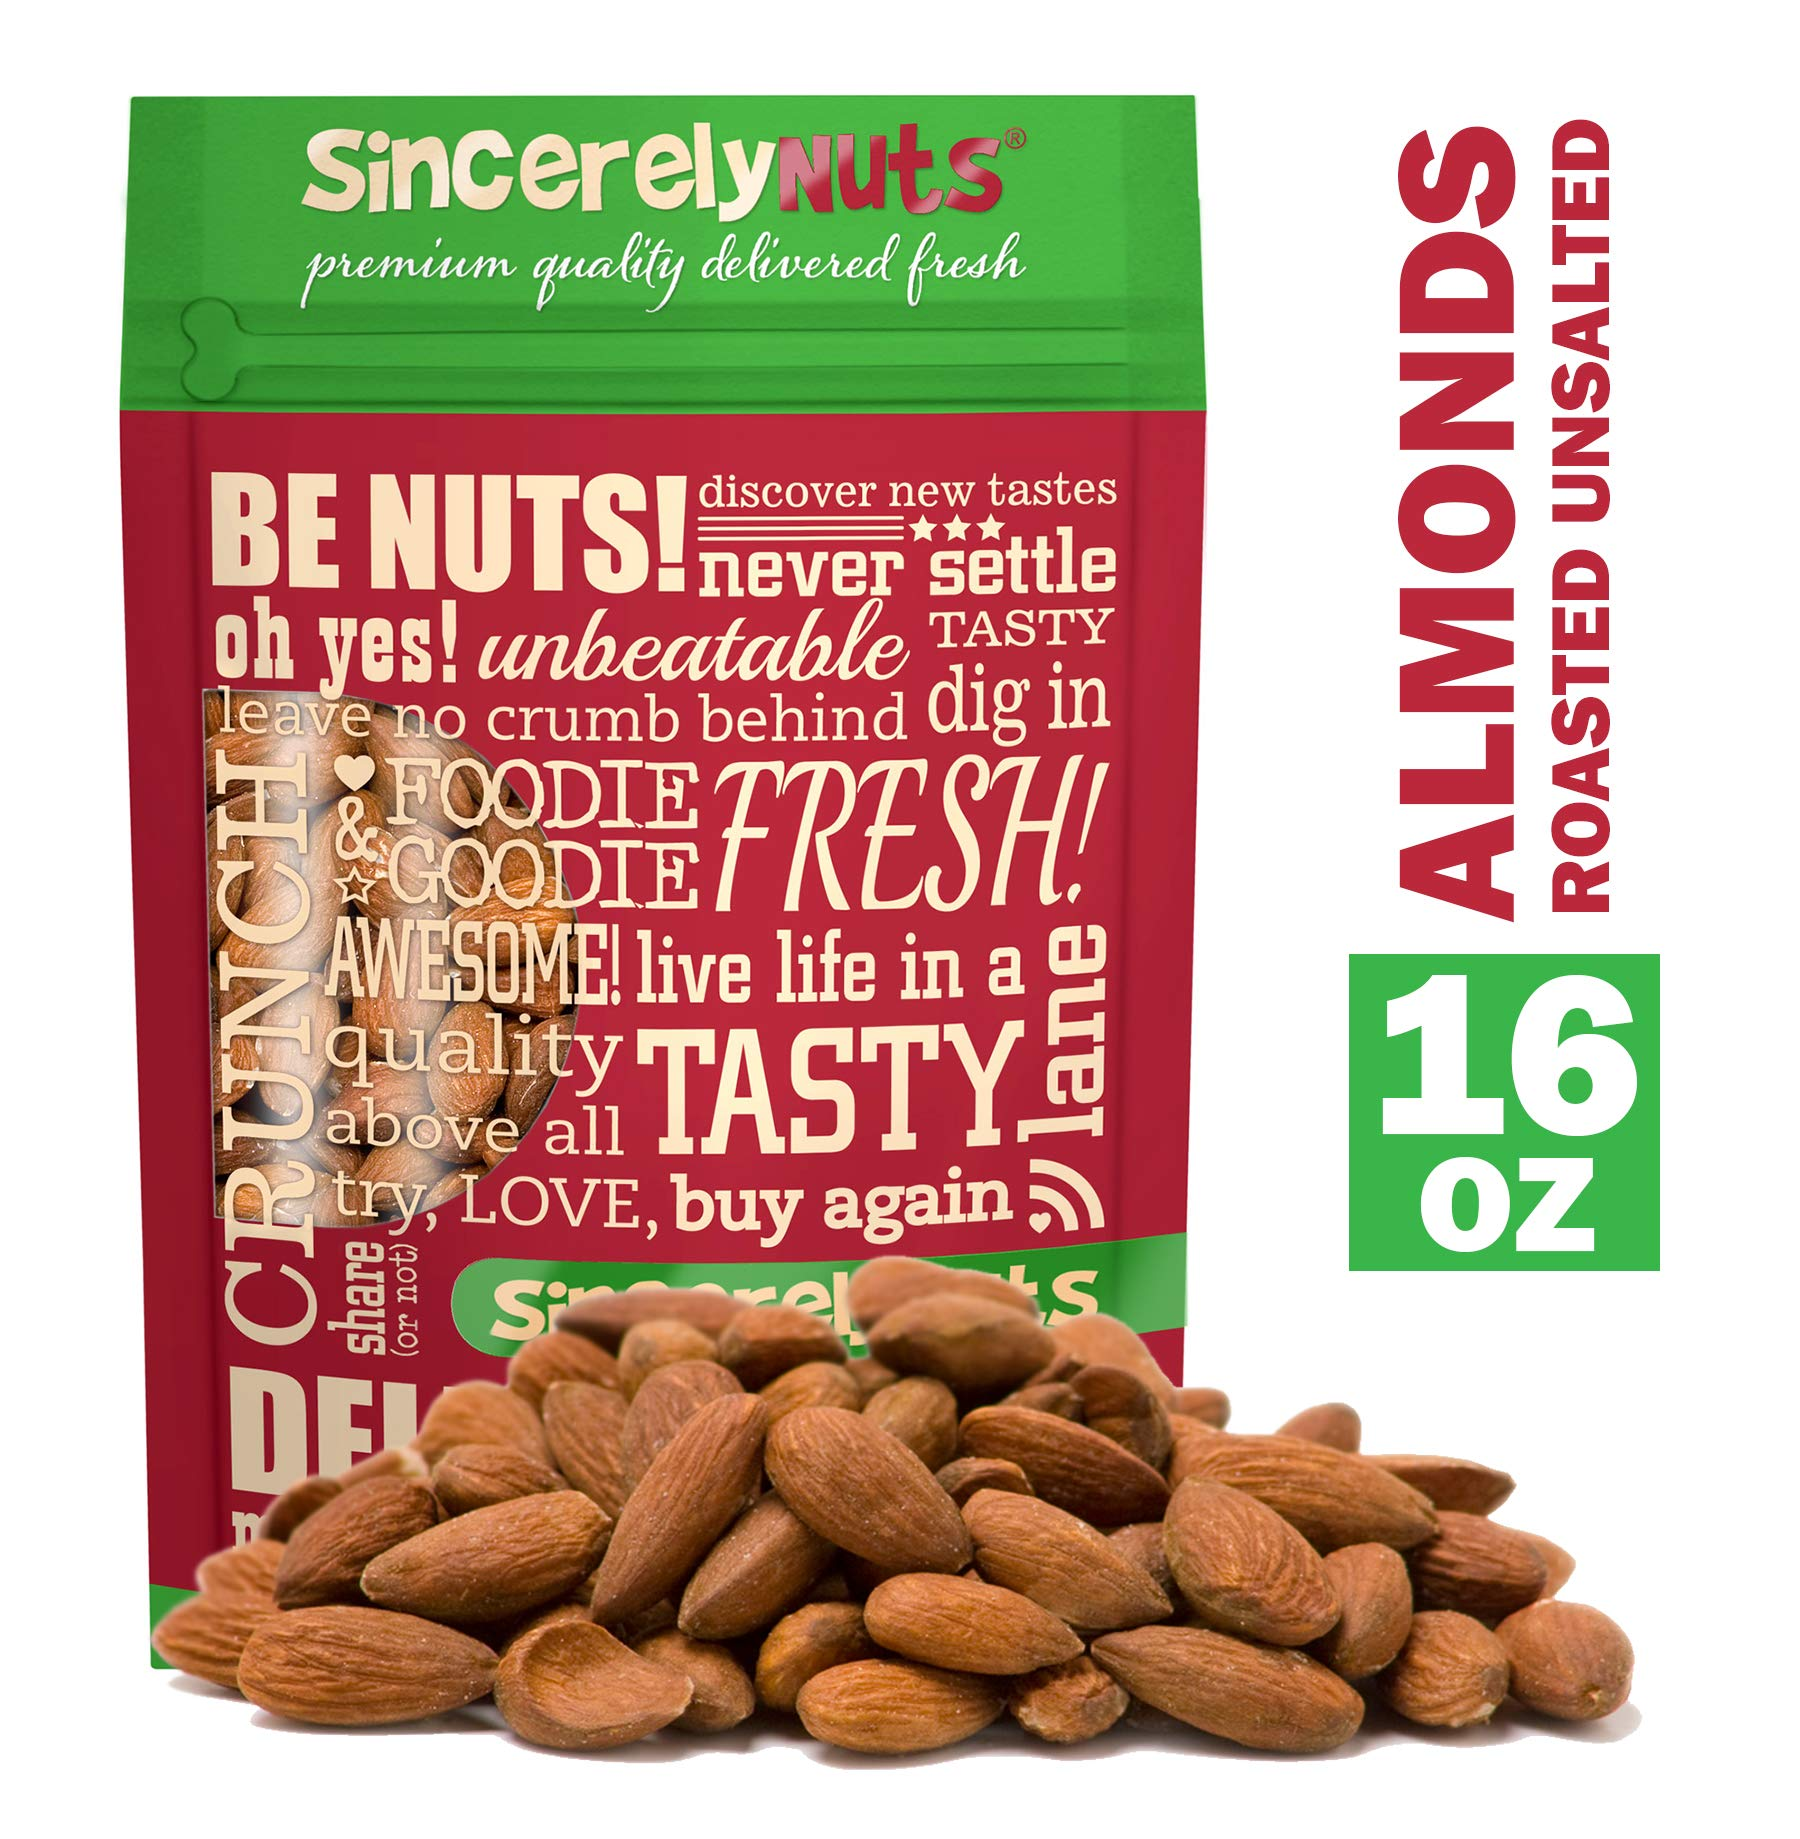 Sincerely Nuts - Roasted Whole Unsalted Almonds | 1 lb. Bag | Delicious Guilt Free Snack | Low Calorie, Vegan, Gluten Free | Gourmet Kosher Food | Source of Fiber, Protein, Vitamins and Minerals